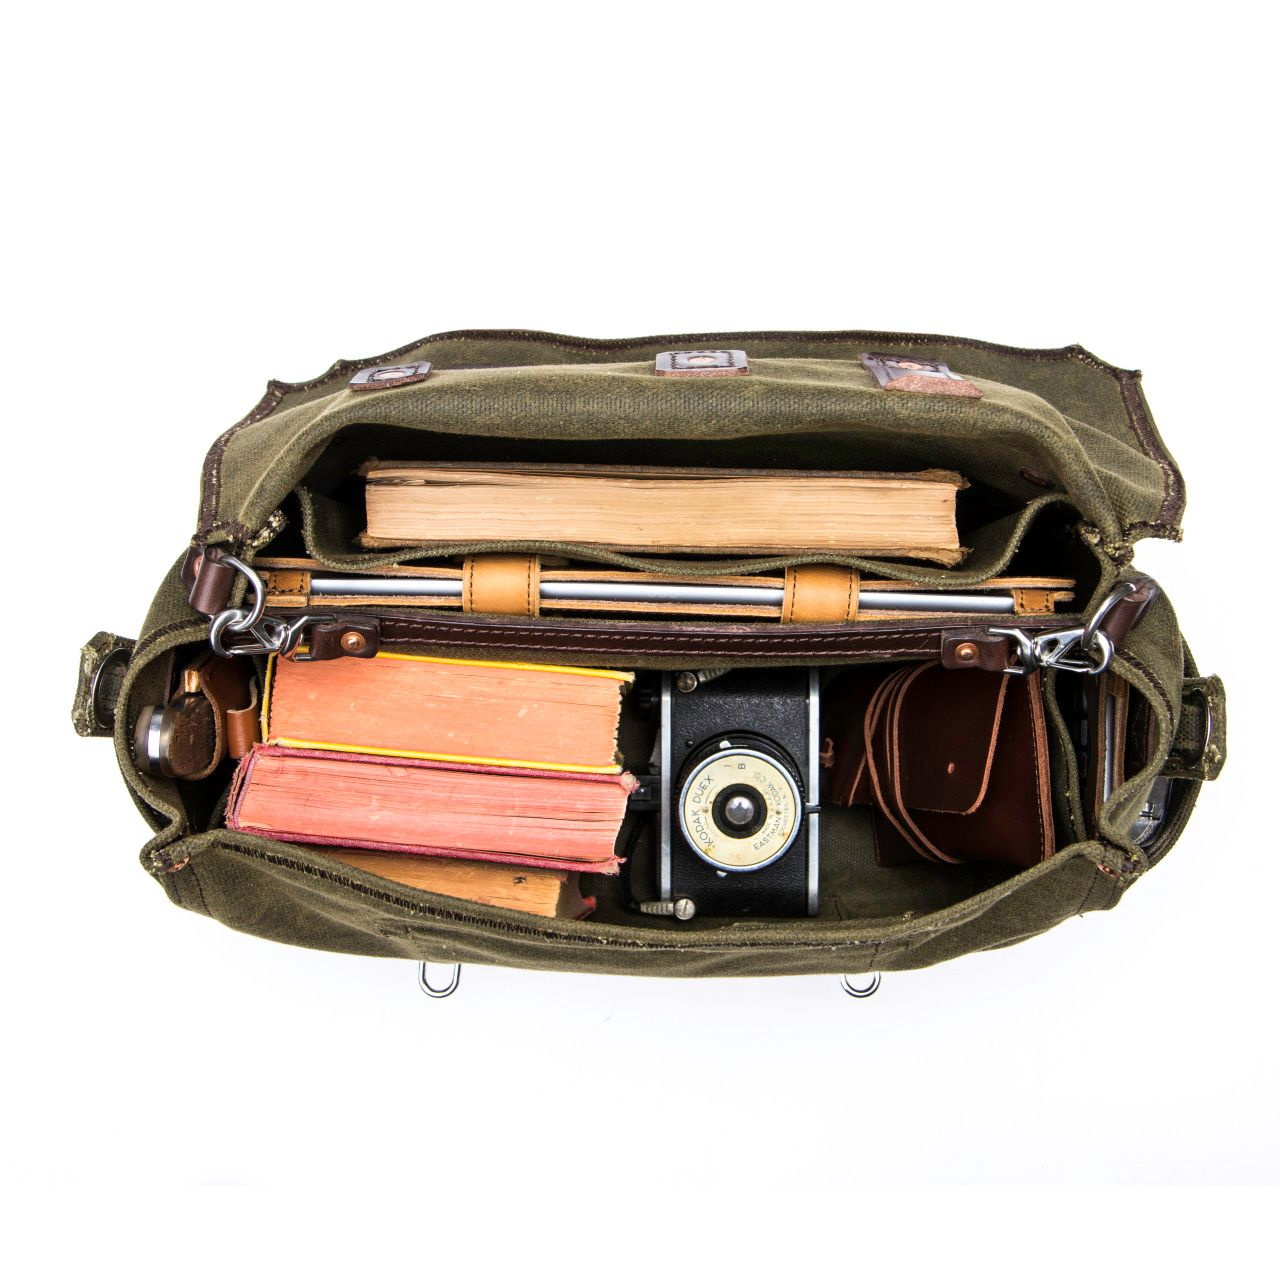 large waxed canvas gear bag in moss green canvas with books, camera and tablet inside